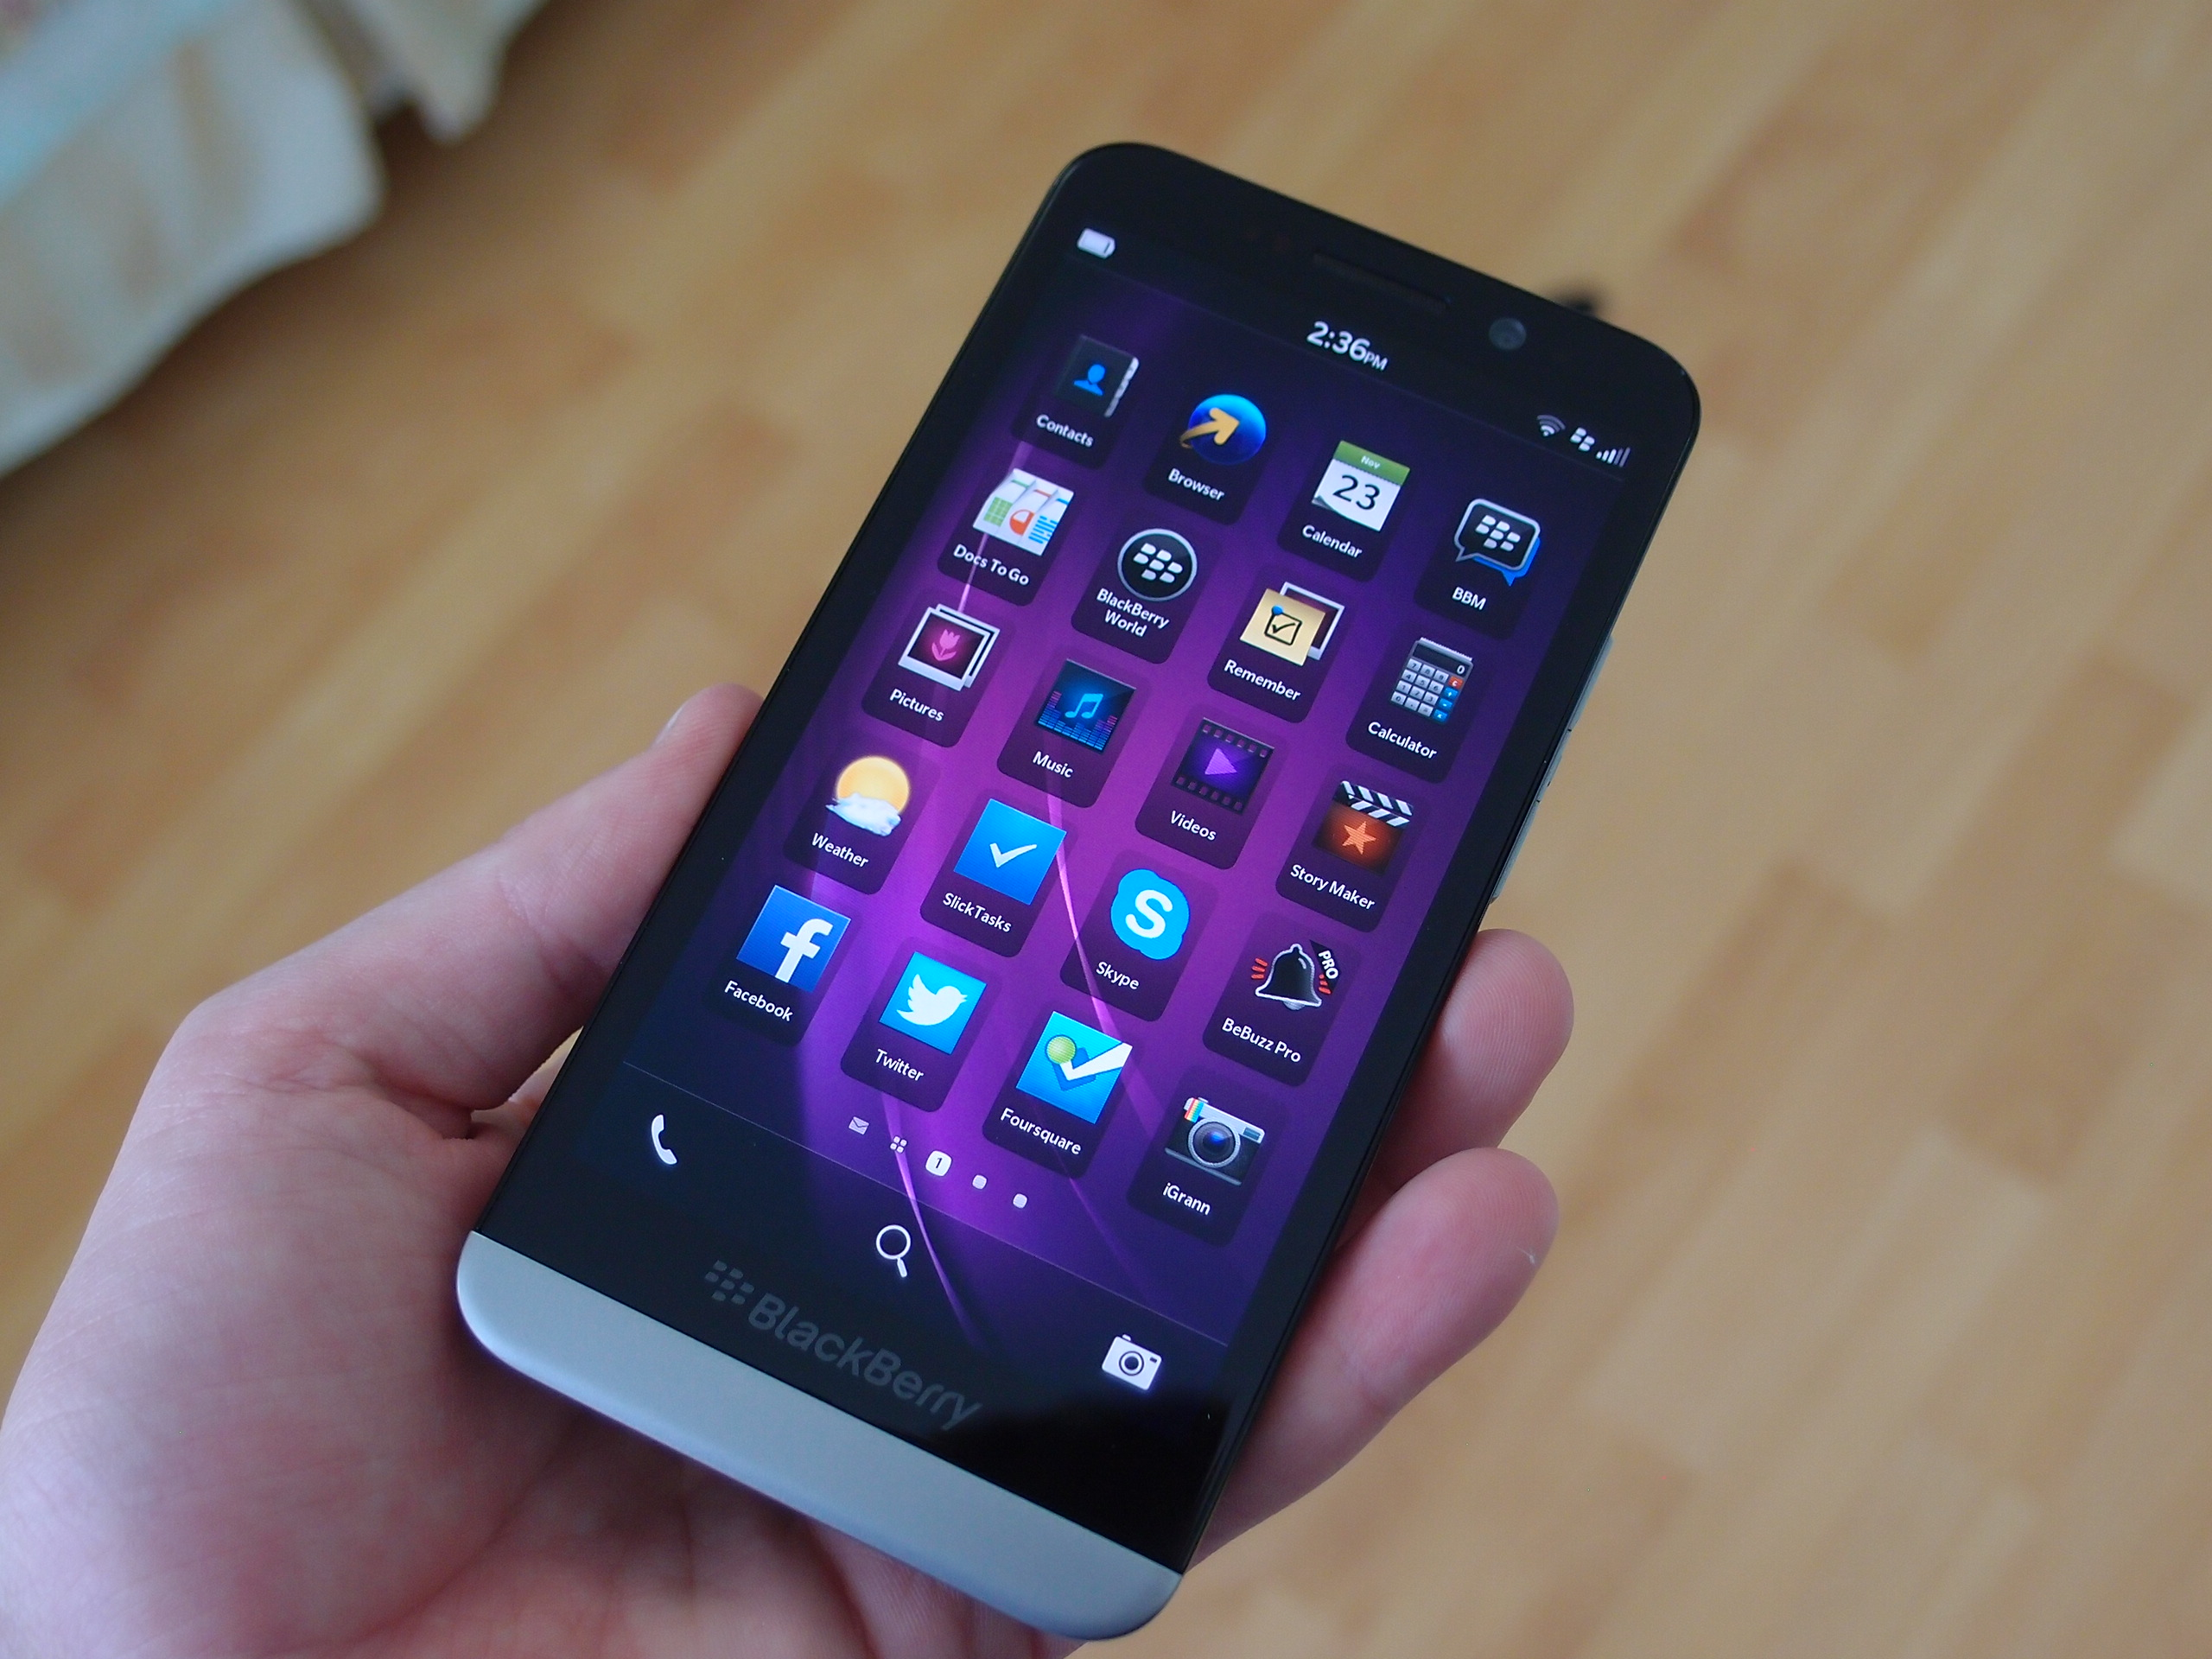 REVIEW] The BlackBerry Z30: BlackBerry's Latest and Greatest